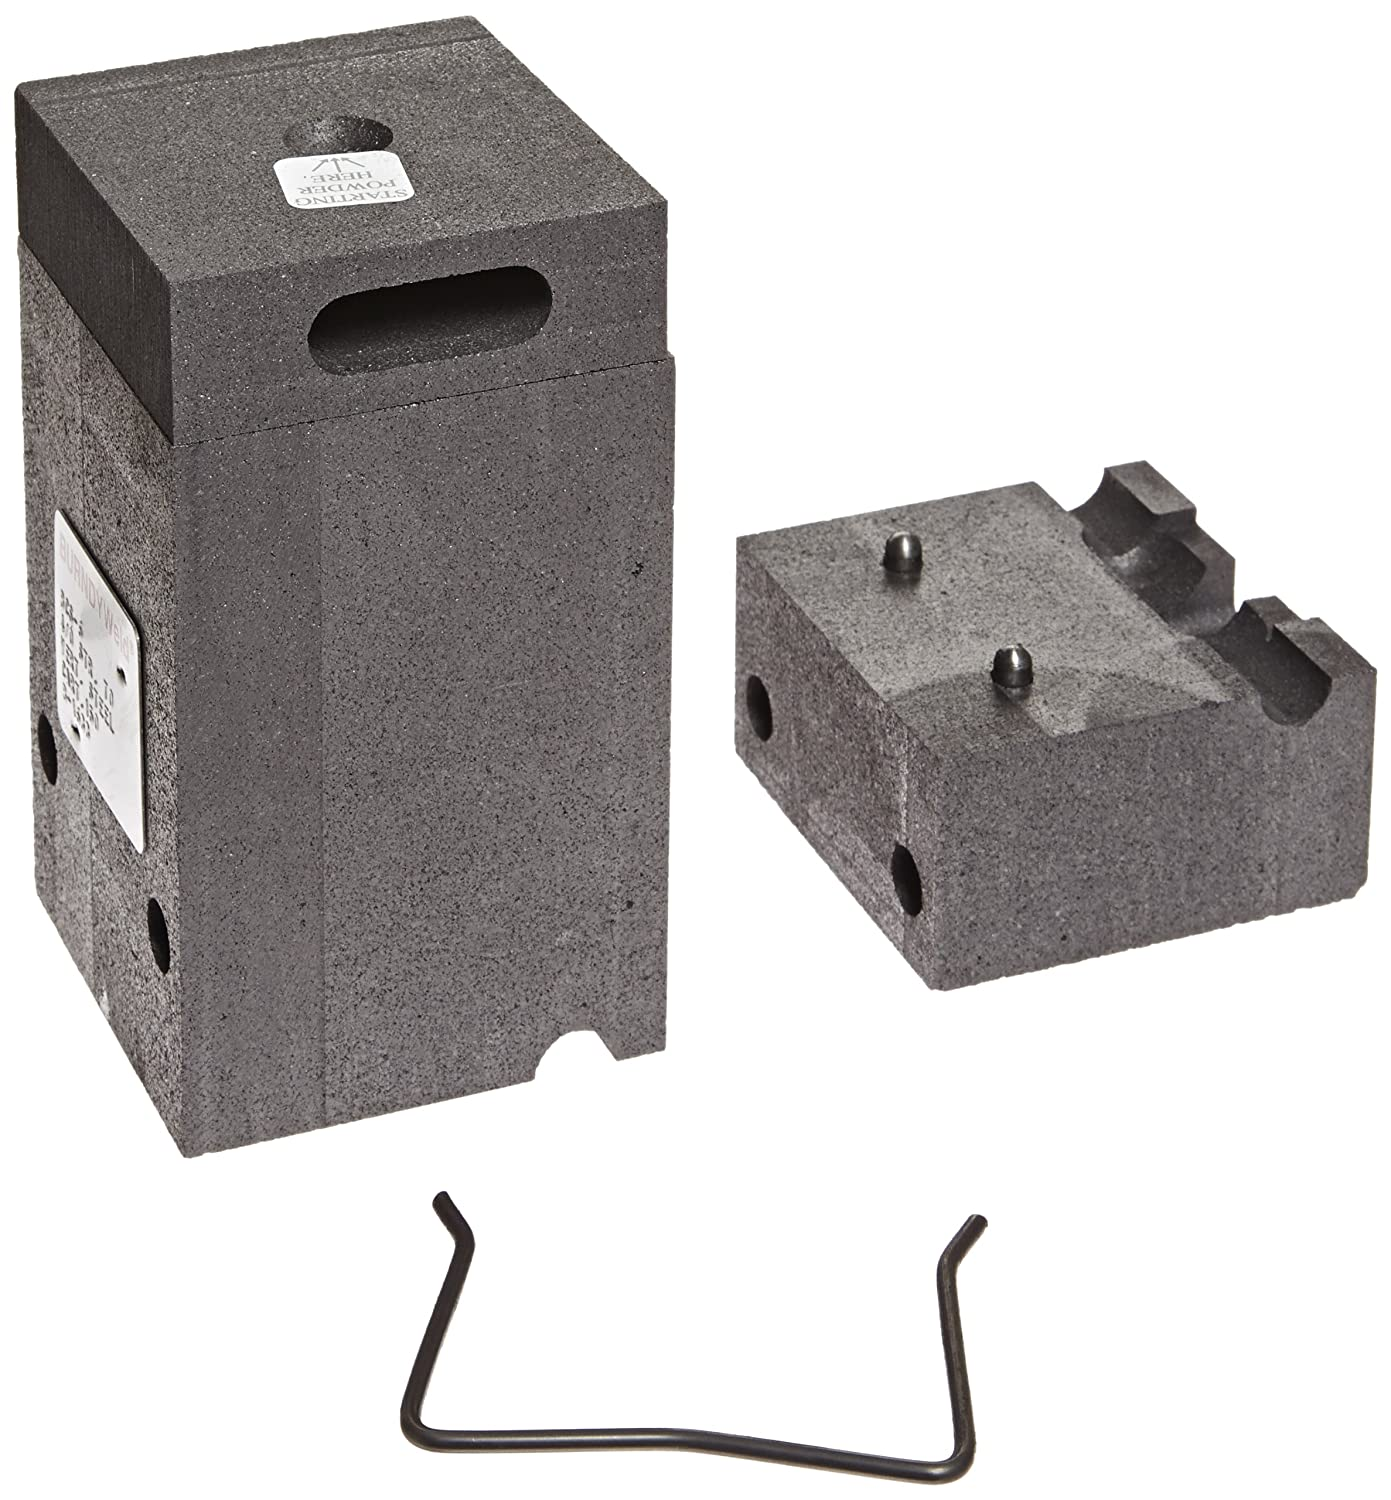 Burndy B-1633 BCS-6 Type Horizontal Through Cable to Vertical Steel Surface Mold Splice 4//0 Cable Size